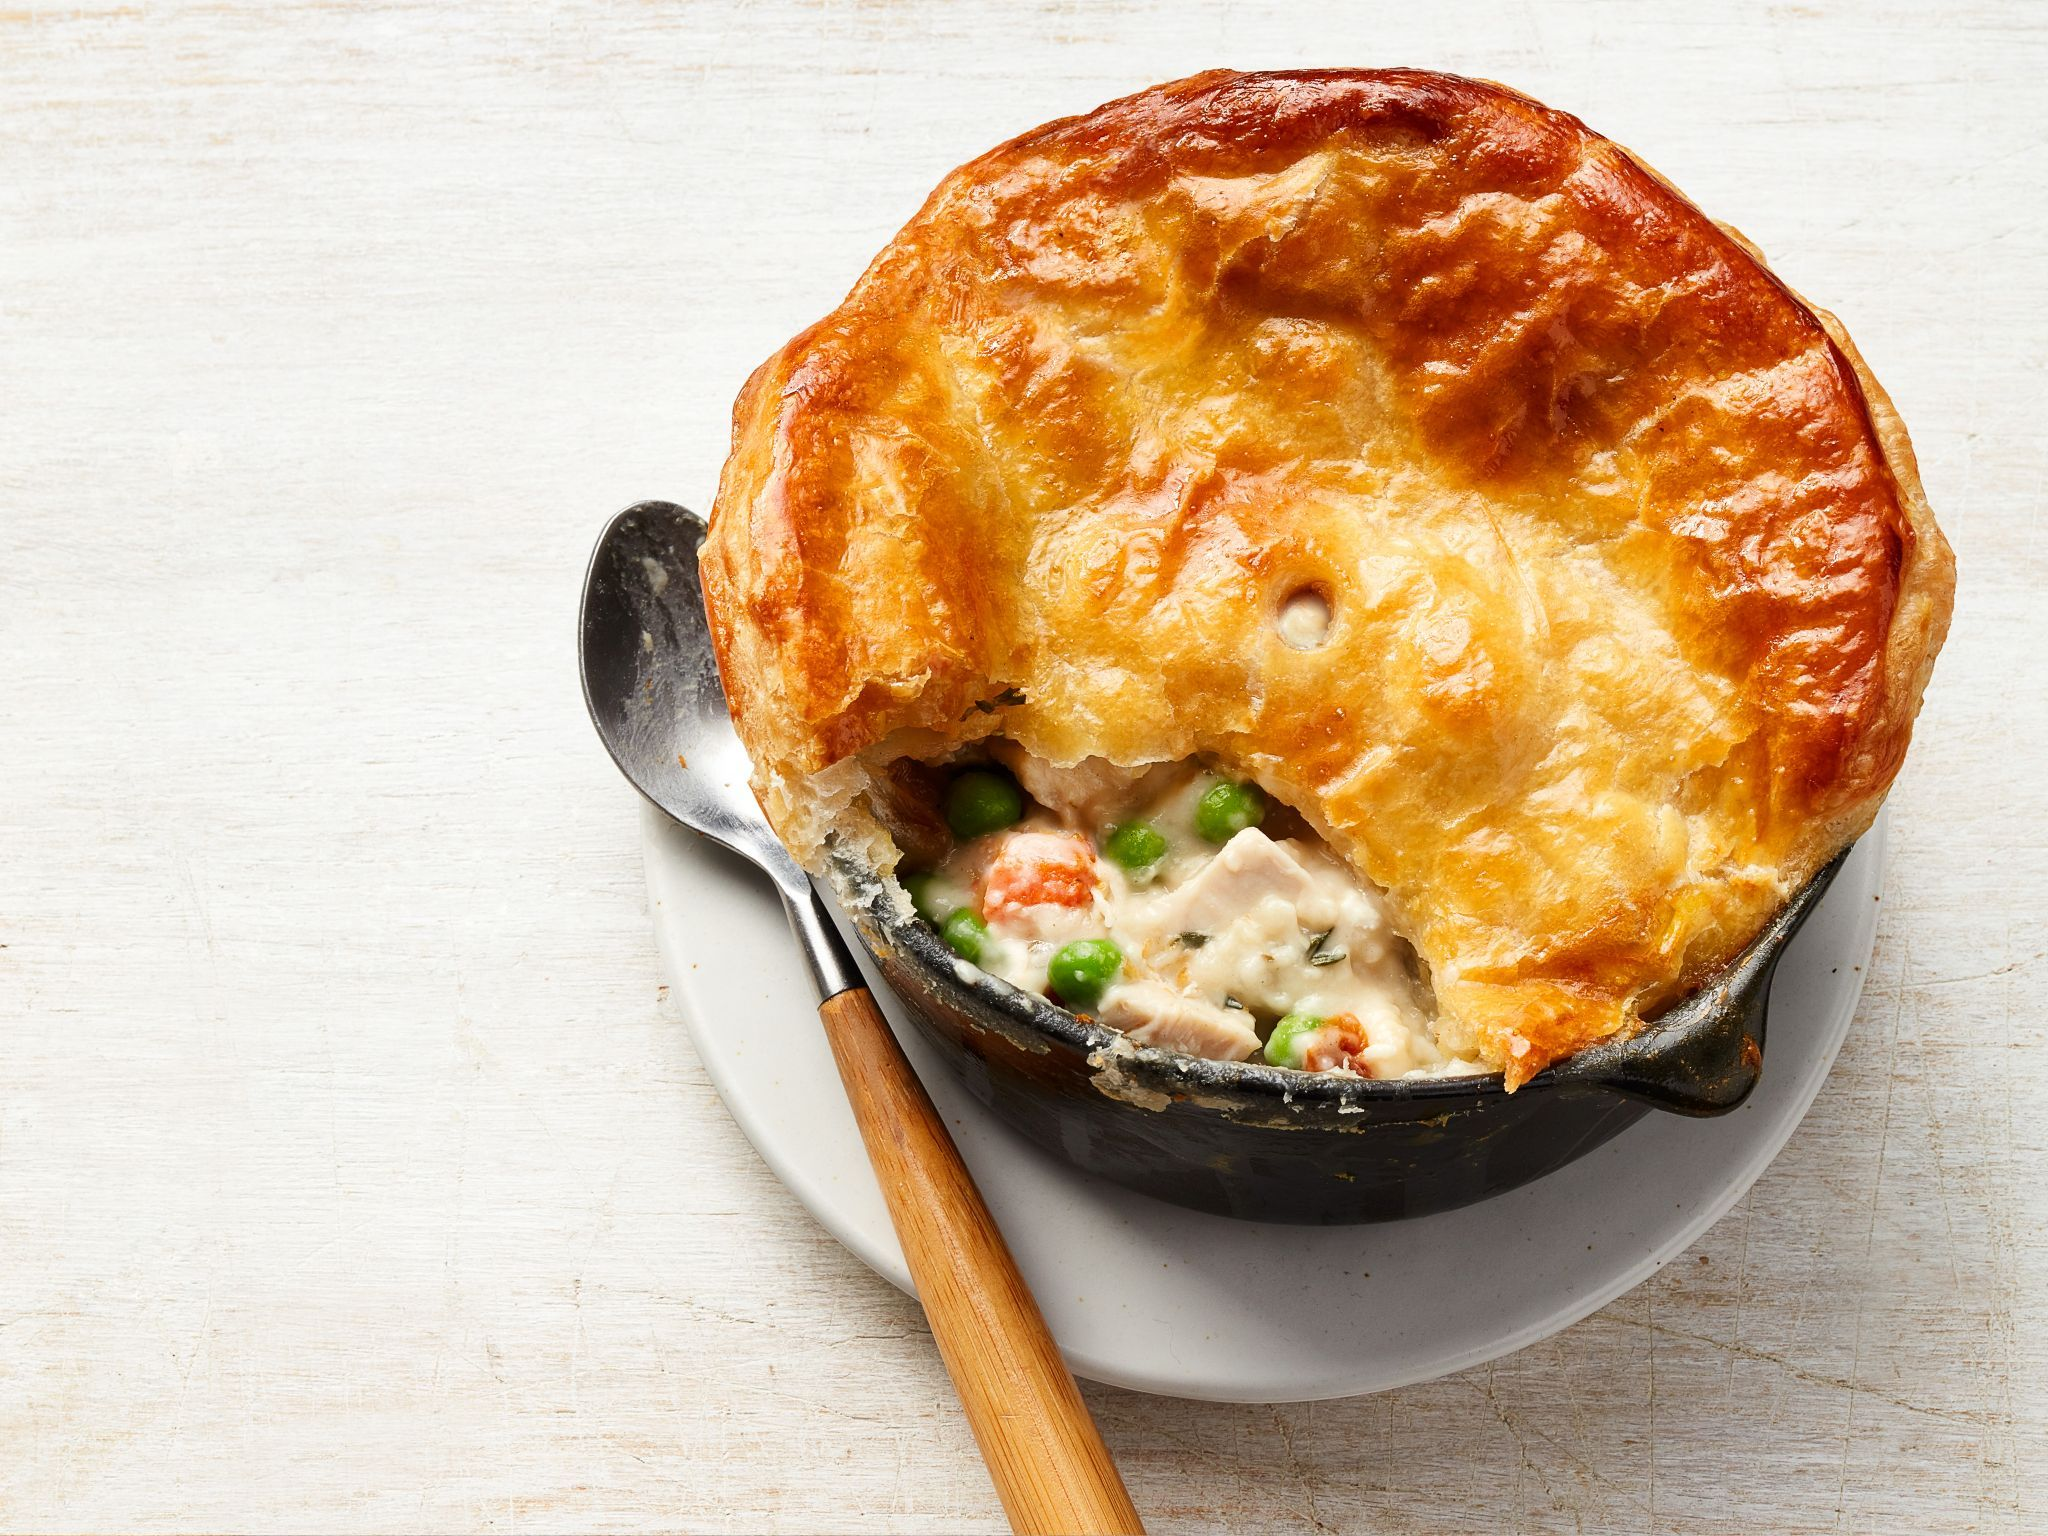 Chicken pot pie recipe katie lee pot pies and pie recipes chicken pot pie forumfinder